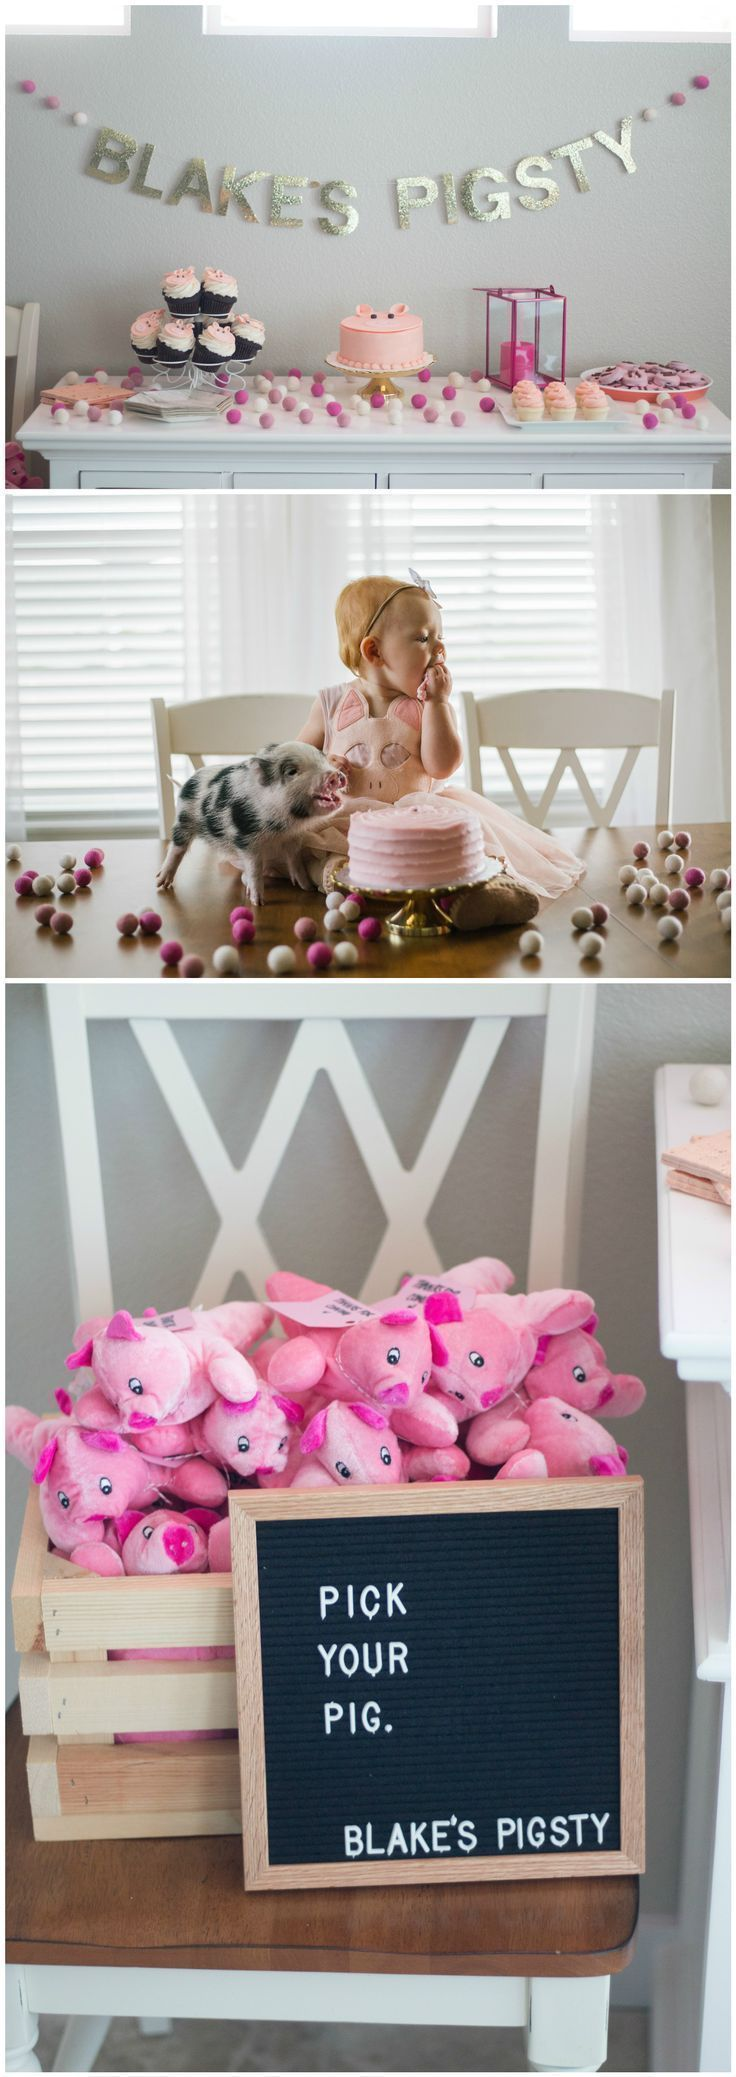 First Birthday Party | Baby Birthday Party | Girl Birthday Party | Pig Party | Birthday Party | Party Planning | Feminine Party